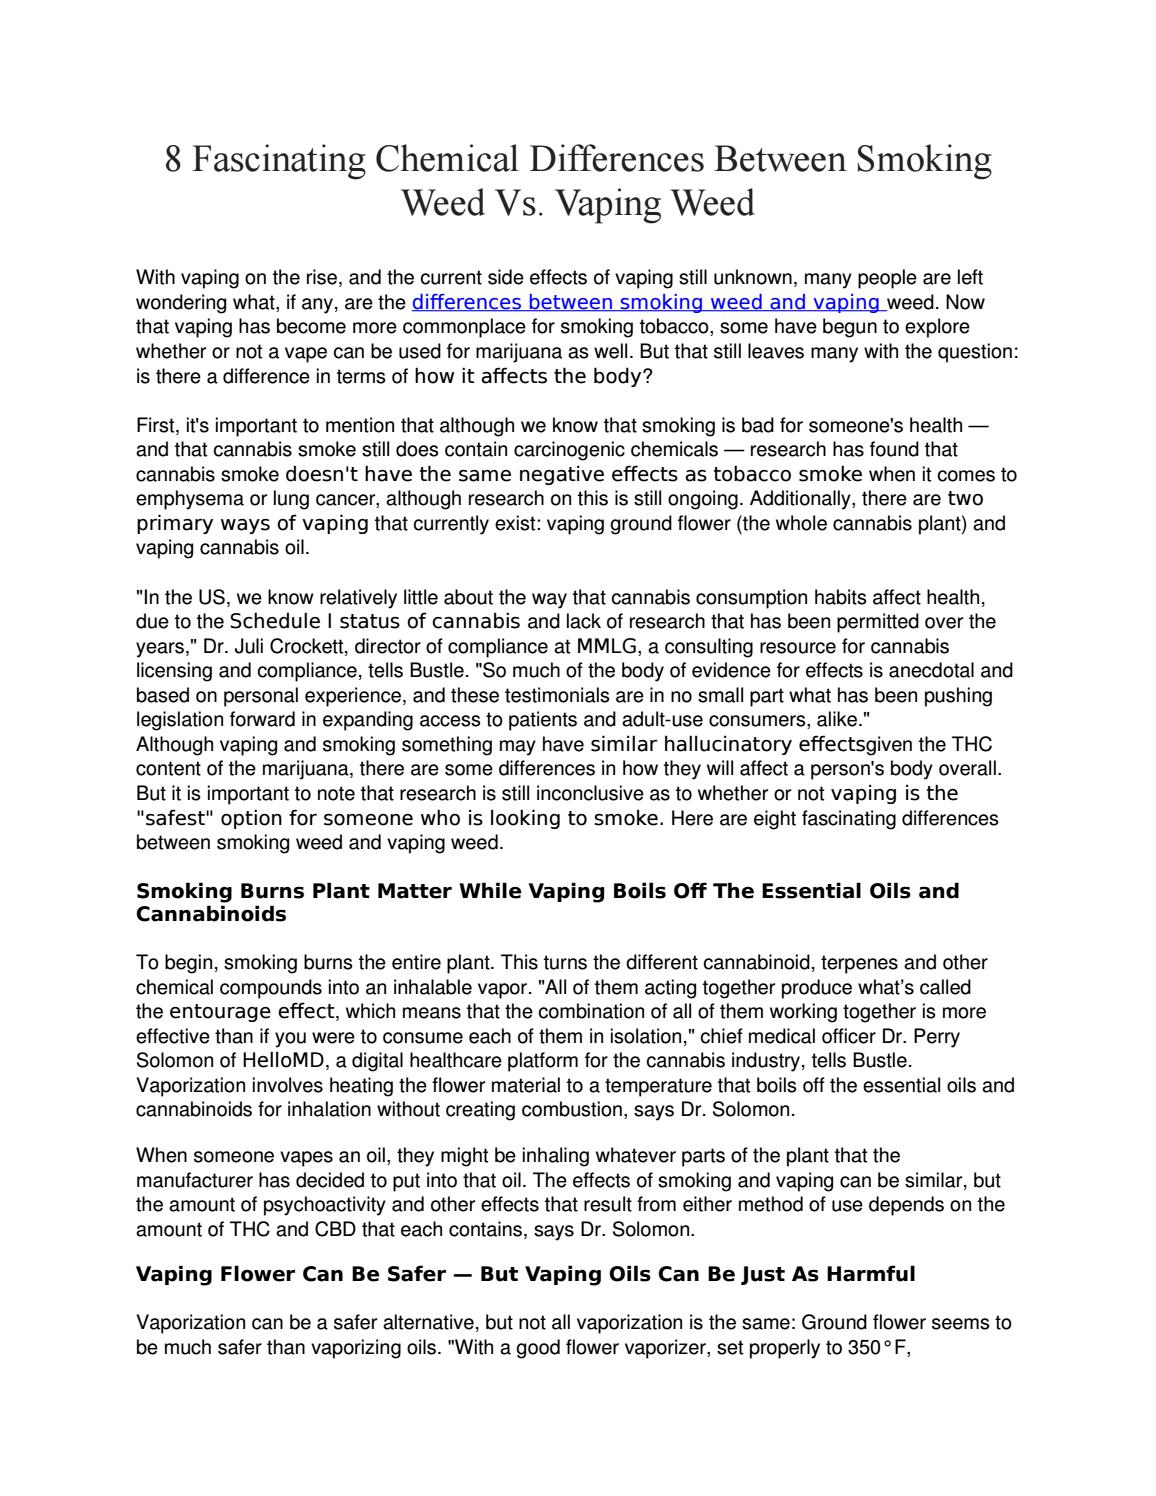 8 Fascinating Chemical Differences Between Smoking Weed Vs  Vaping Weed